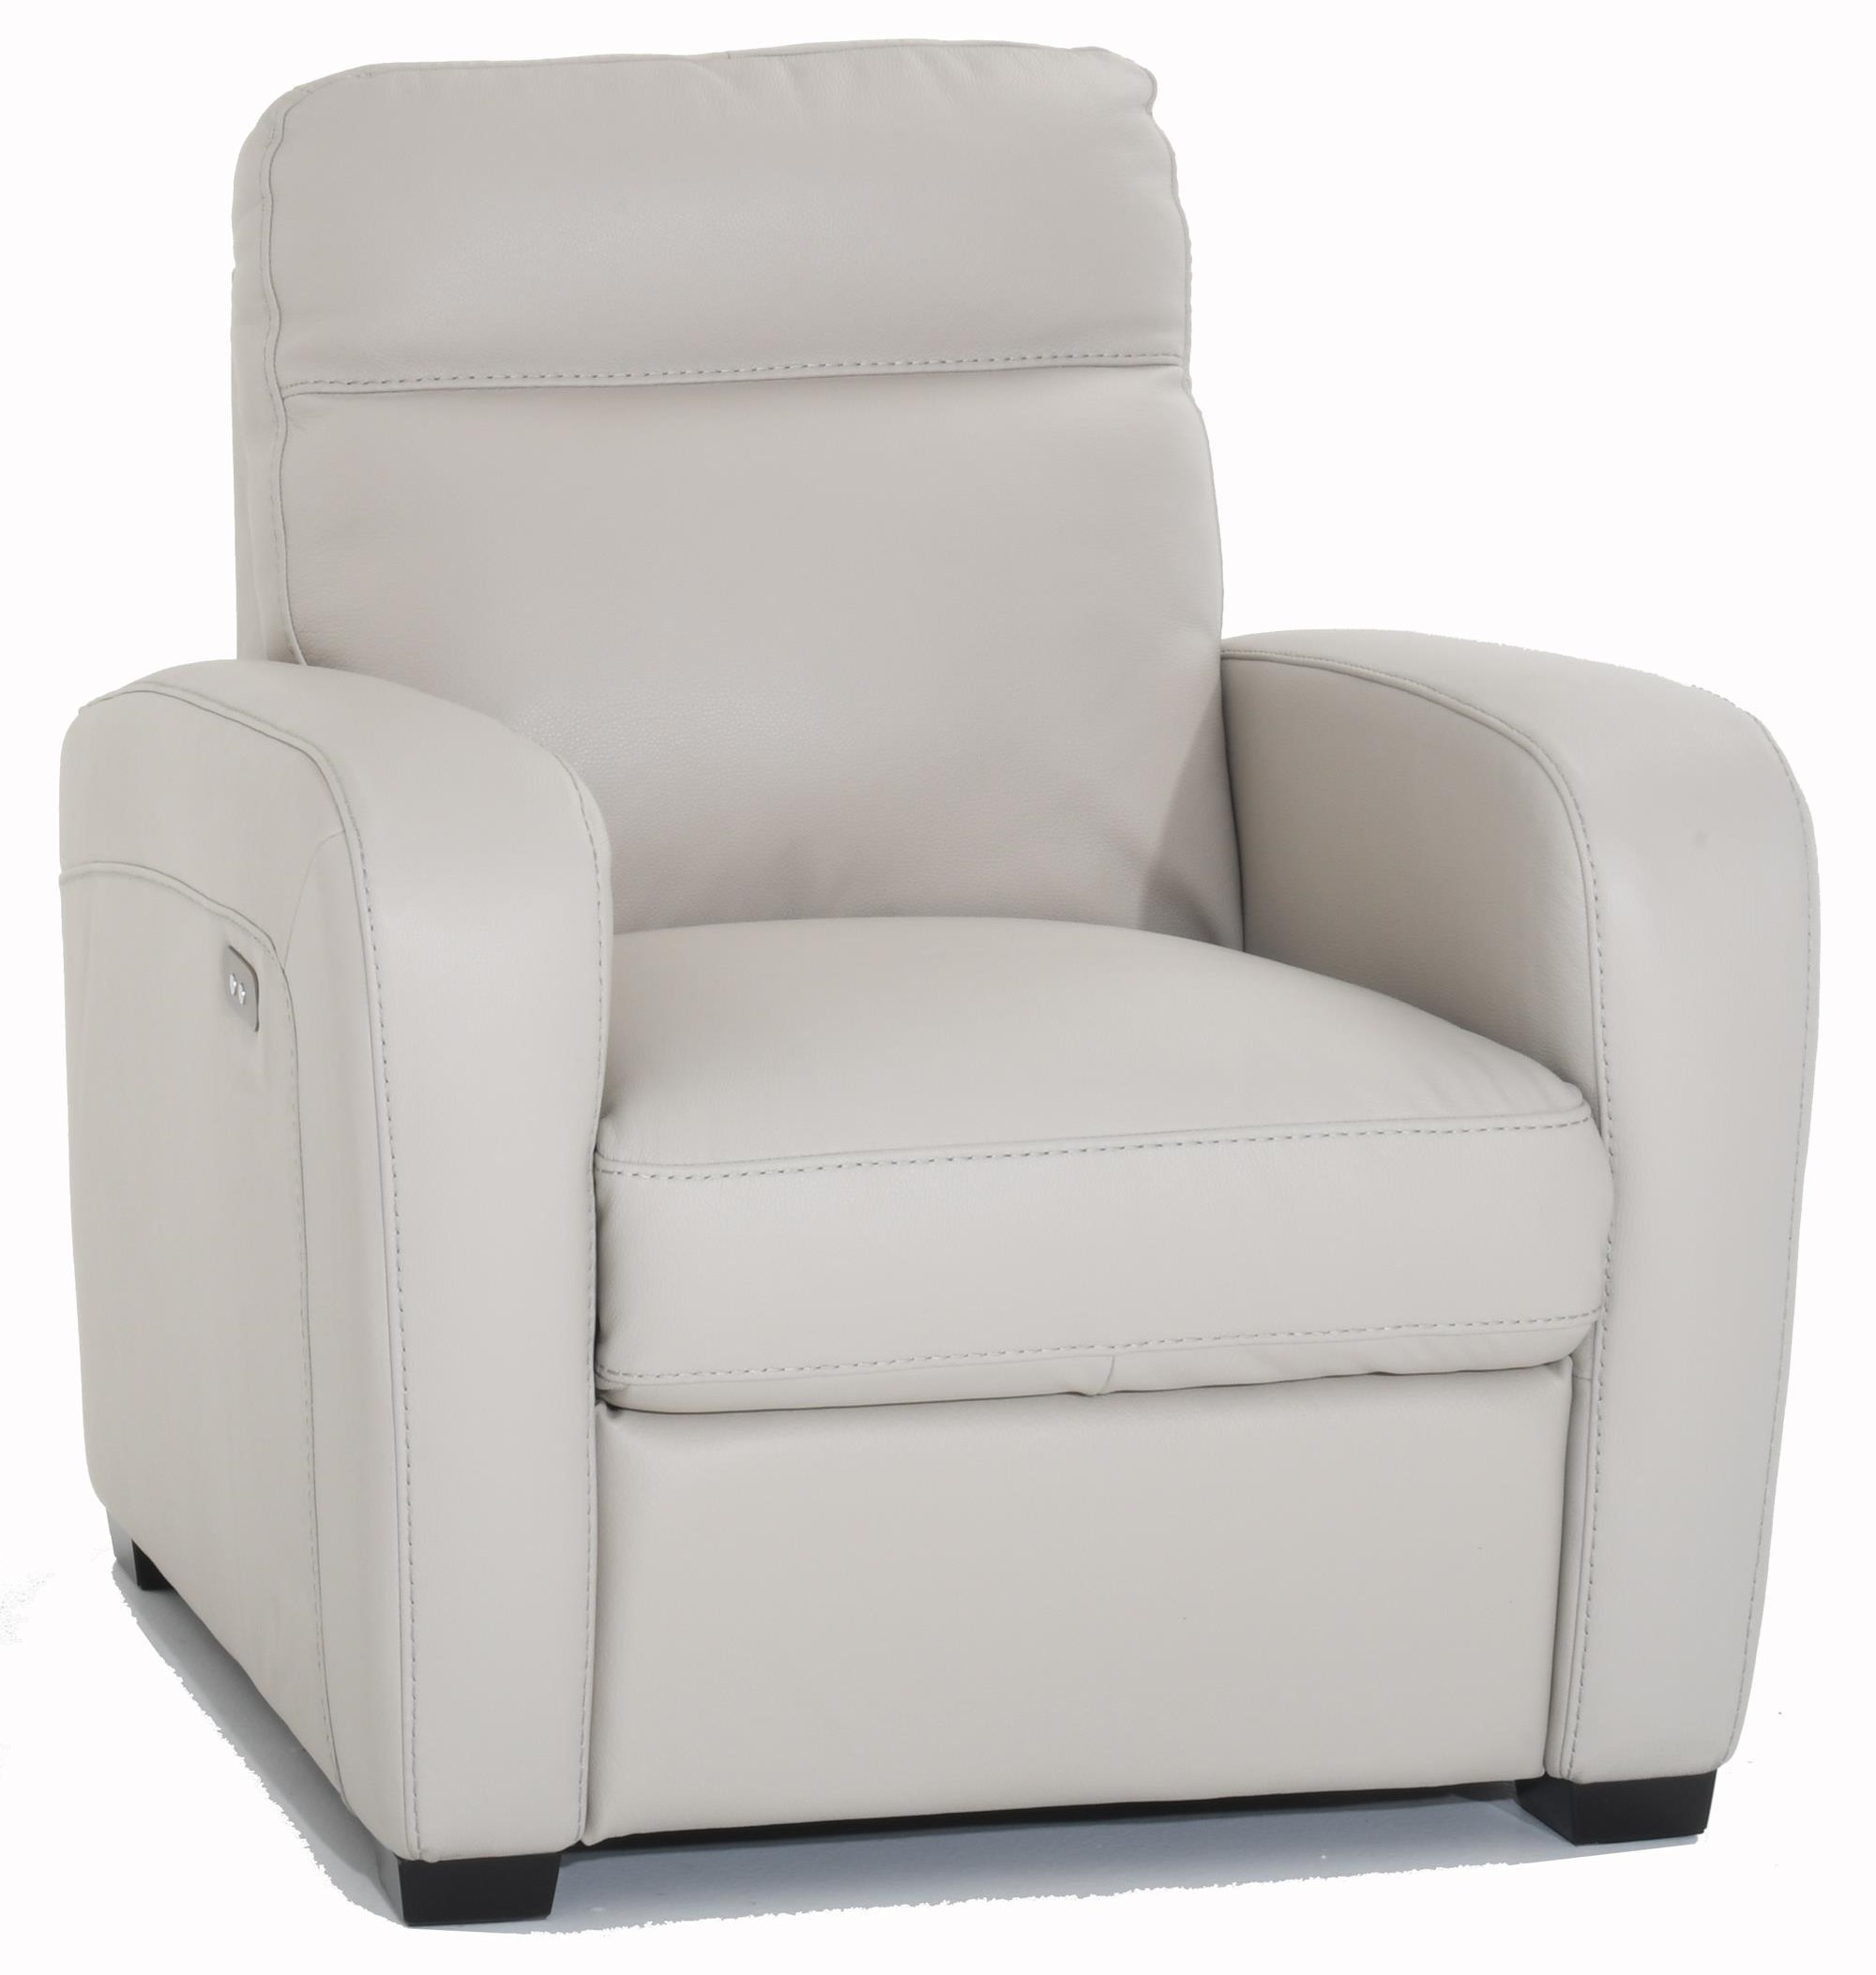 Accoglienza Leather Power Recliner by Natuzzi Editions at Baer's Furniture